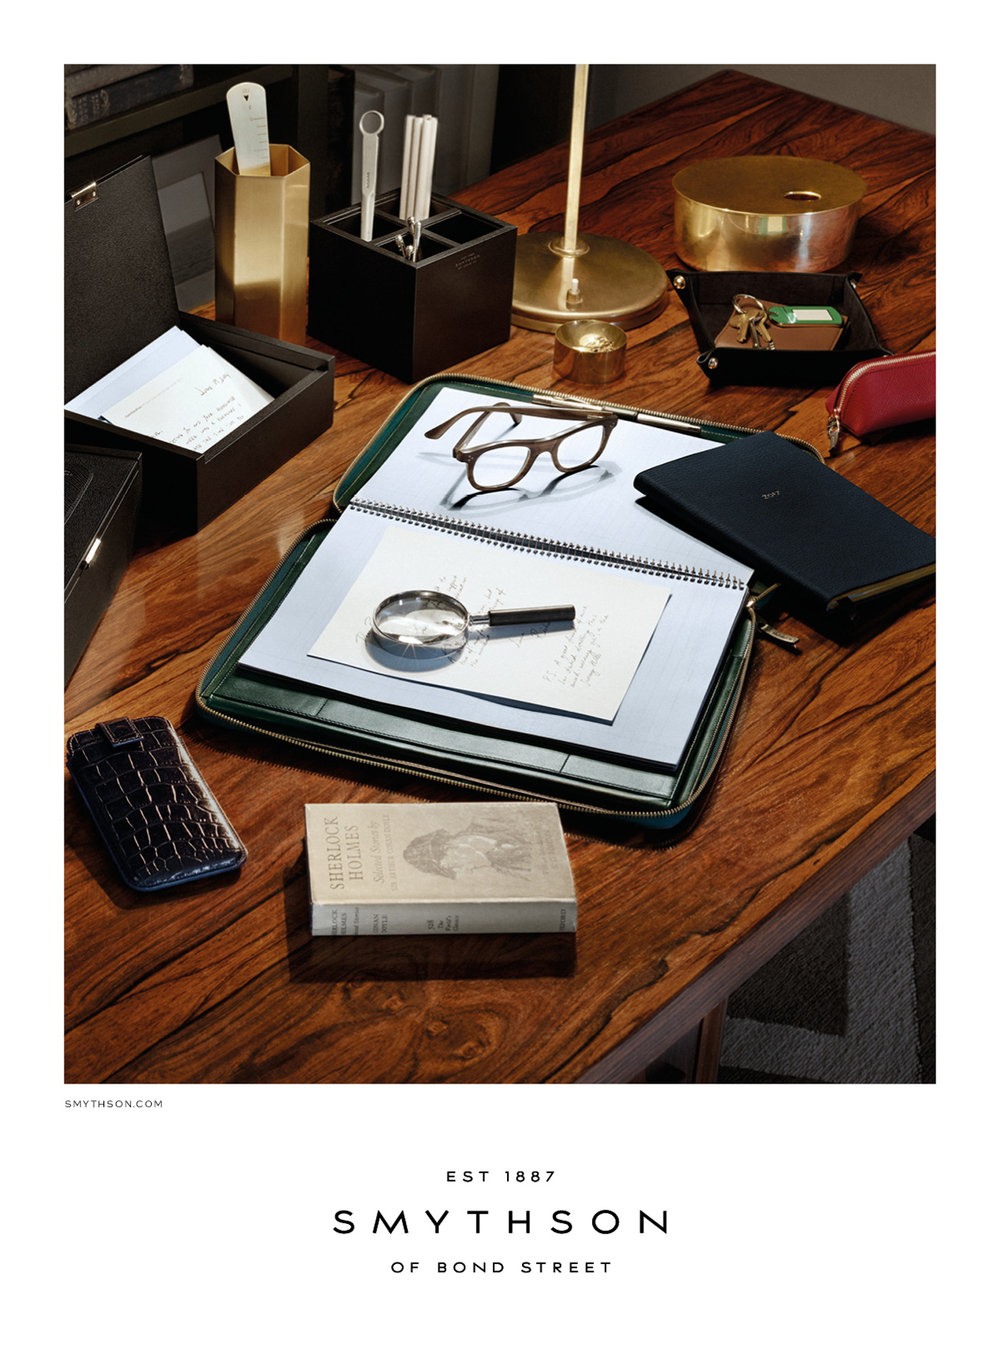 25-icon-artist-management-production-SMYTHSON SP CAMPAIGN.jpg